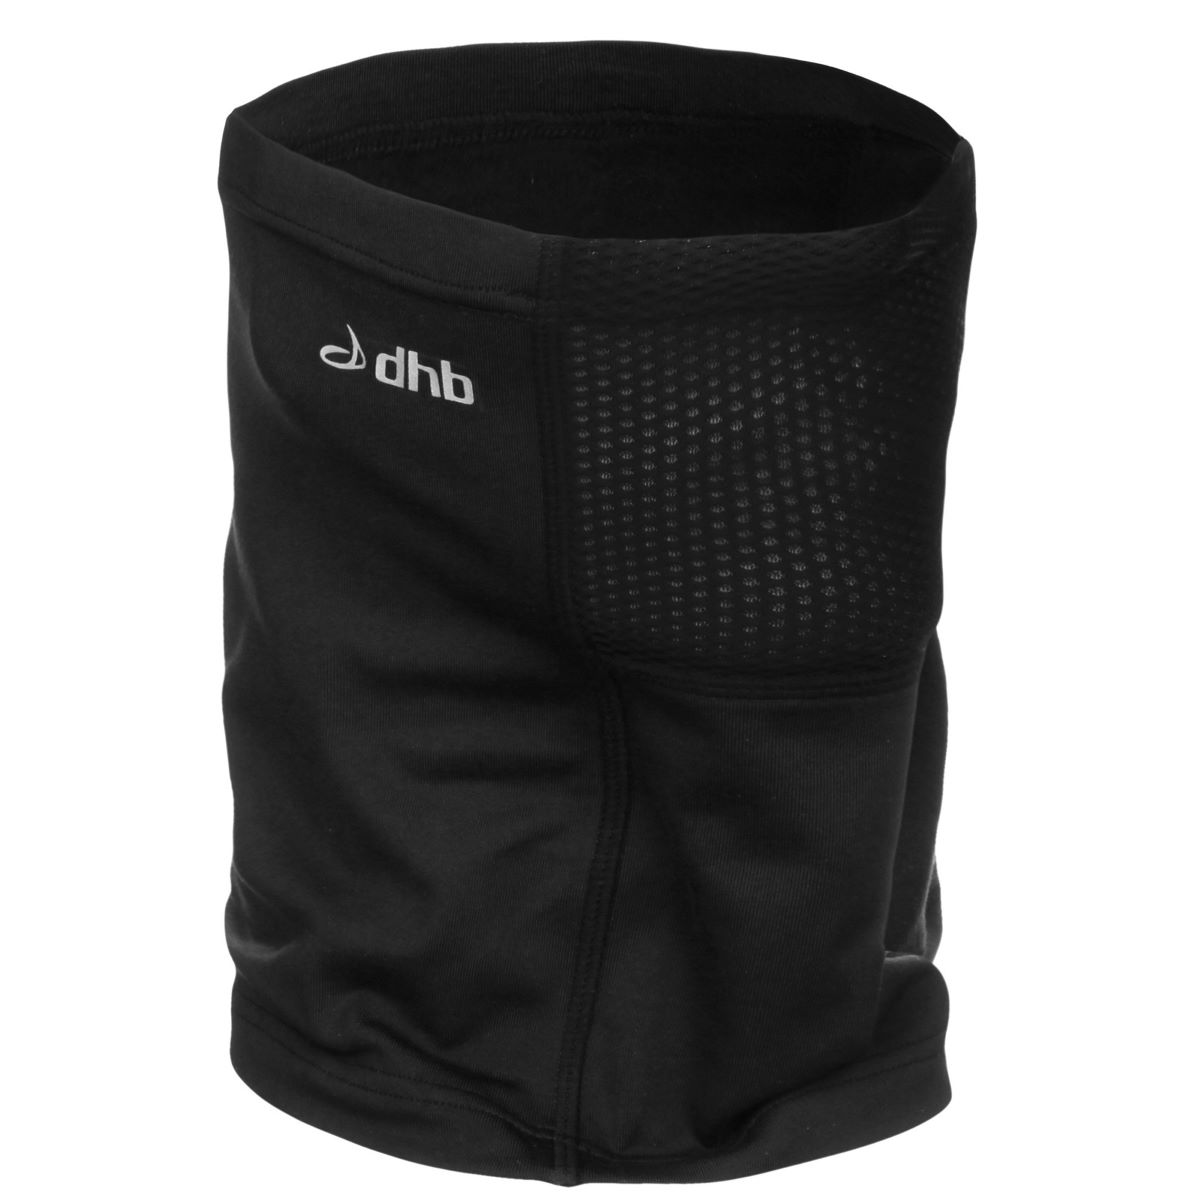 dhb Windslam Neck Tube